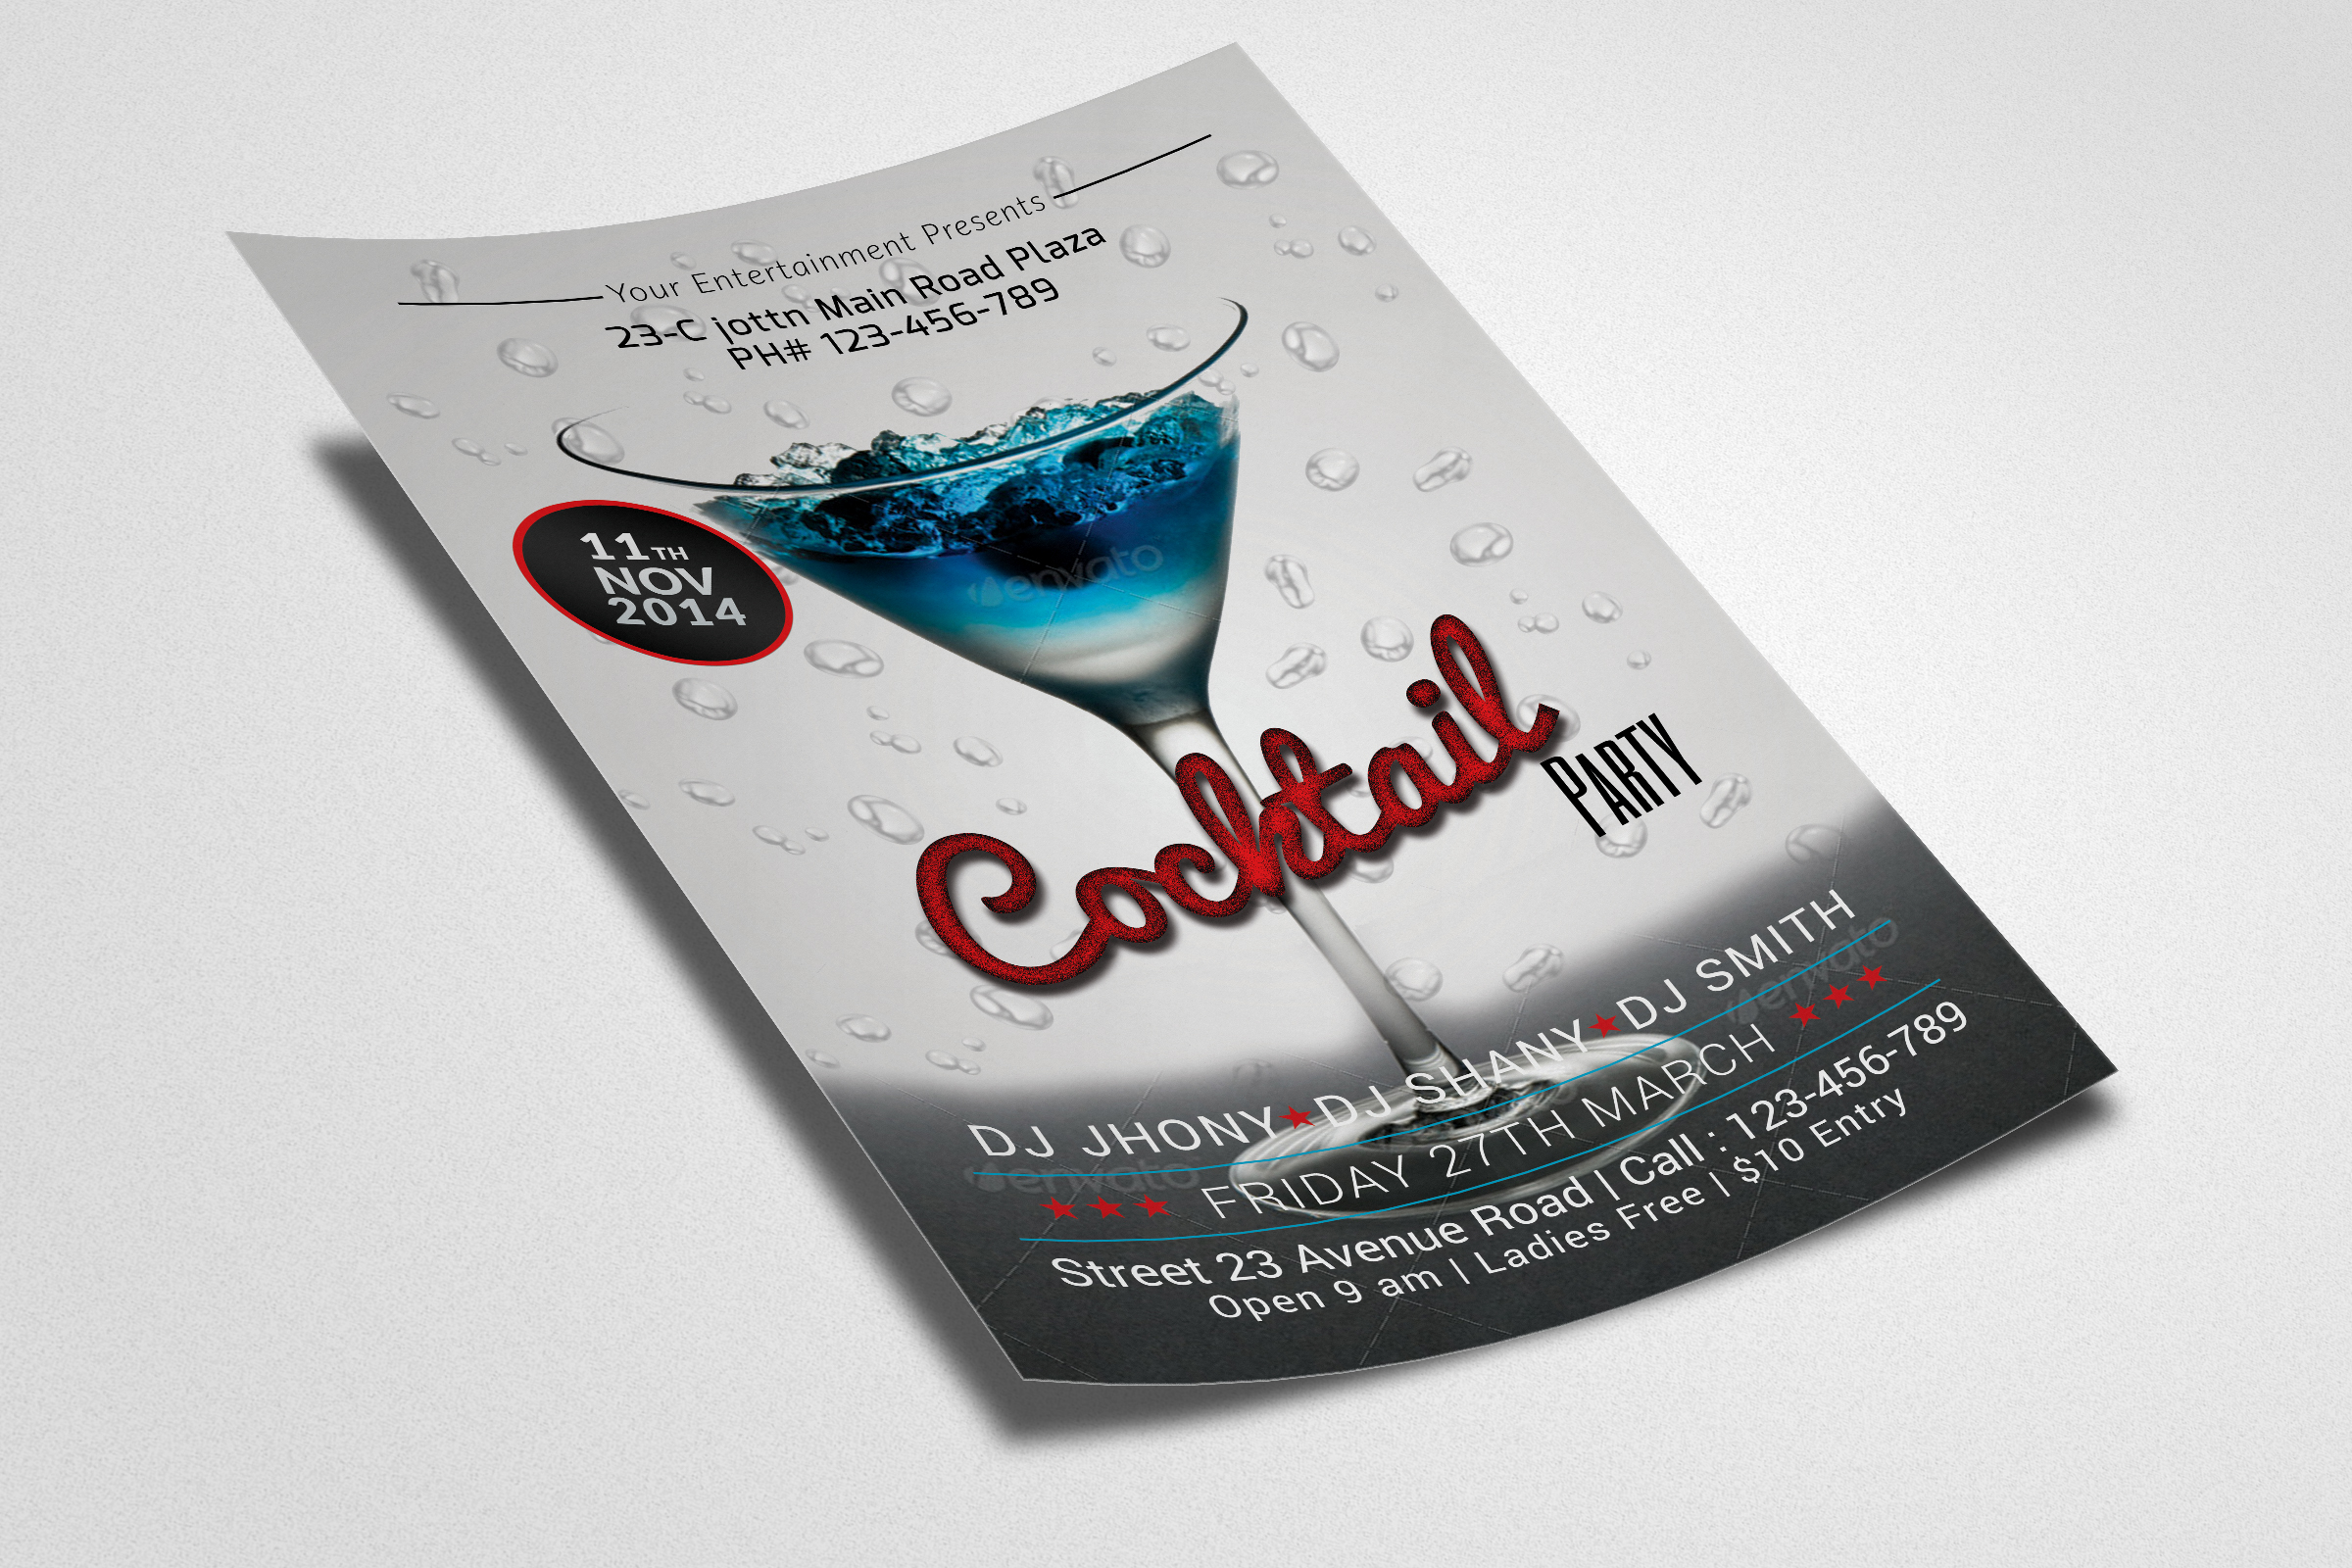 Cocktail Summer Party Flyers example image 2